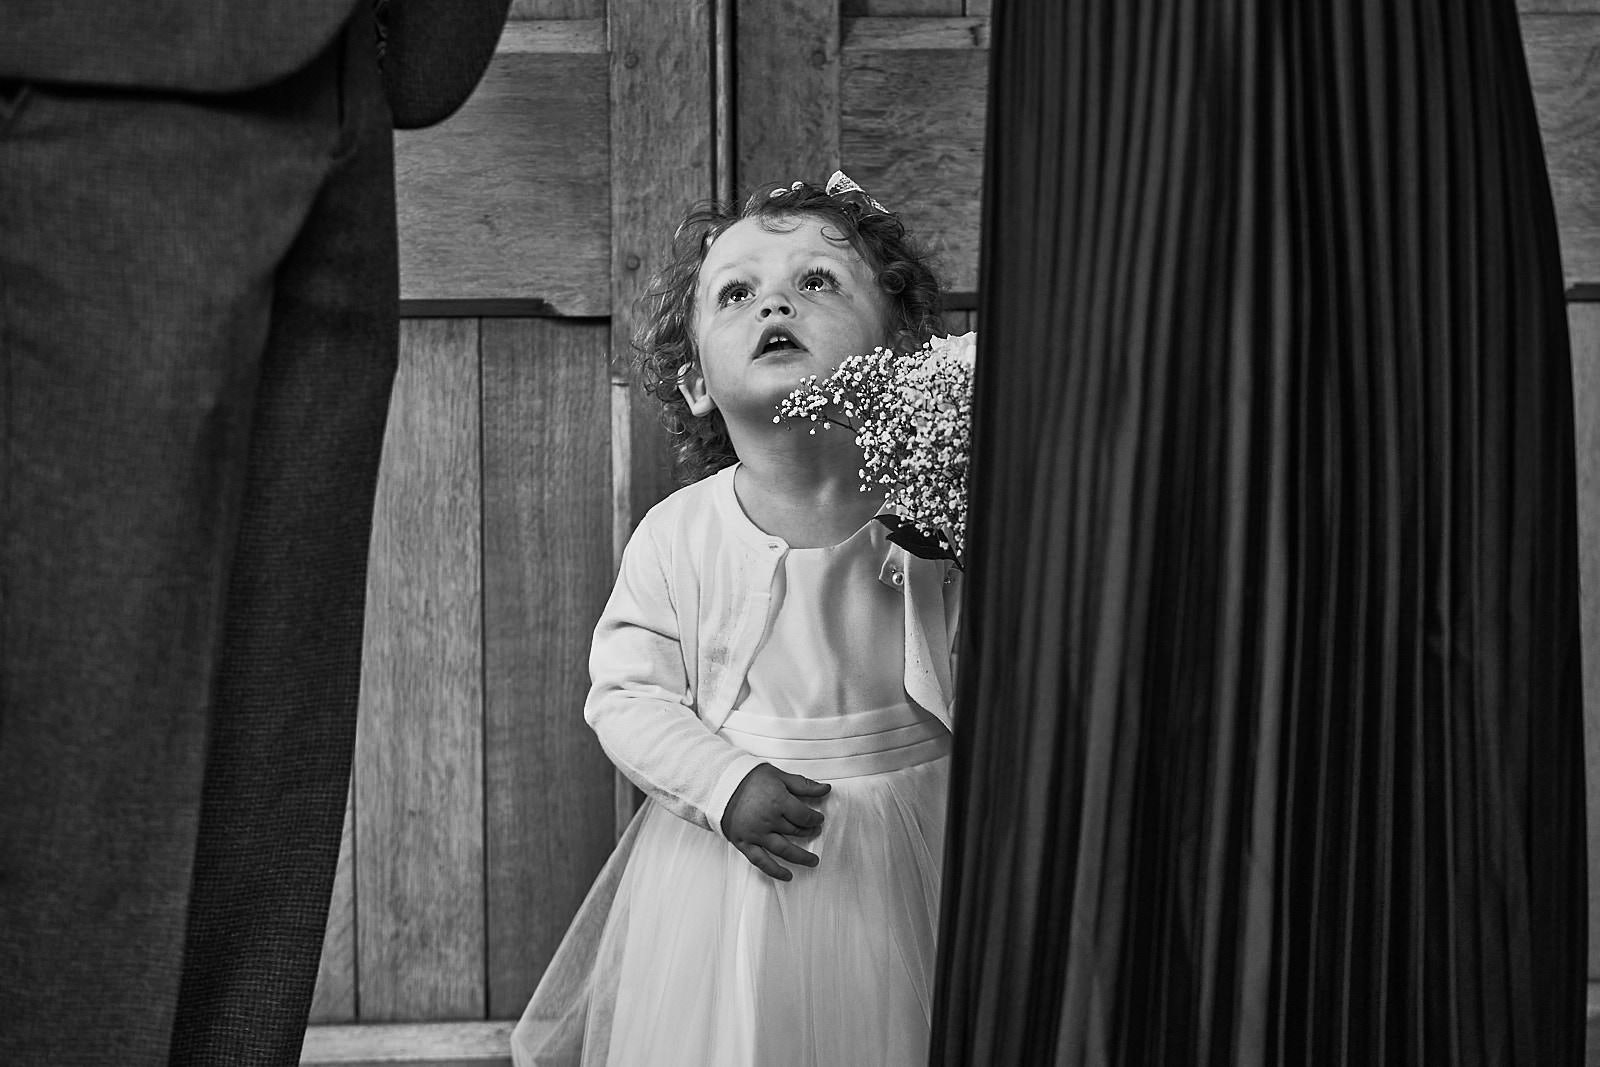 flower girl looks tiny as she looks up at guests during wedding